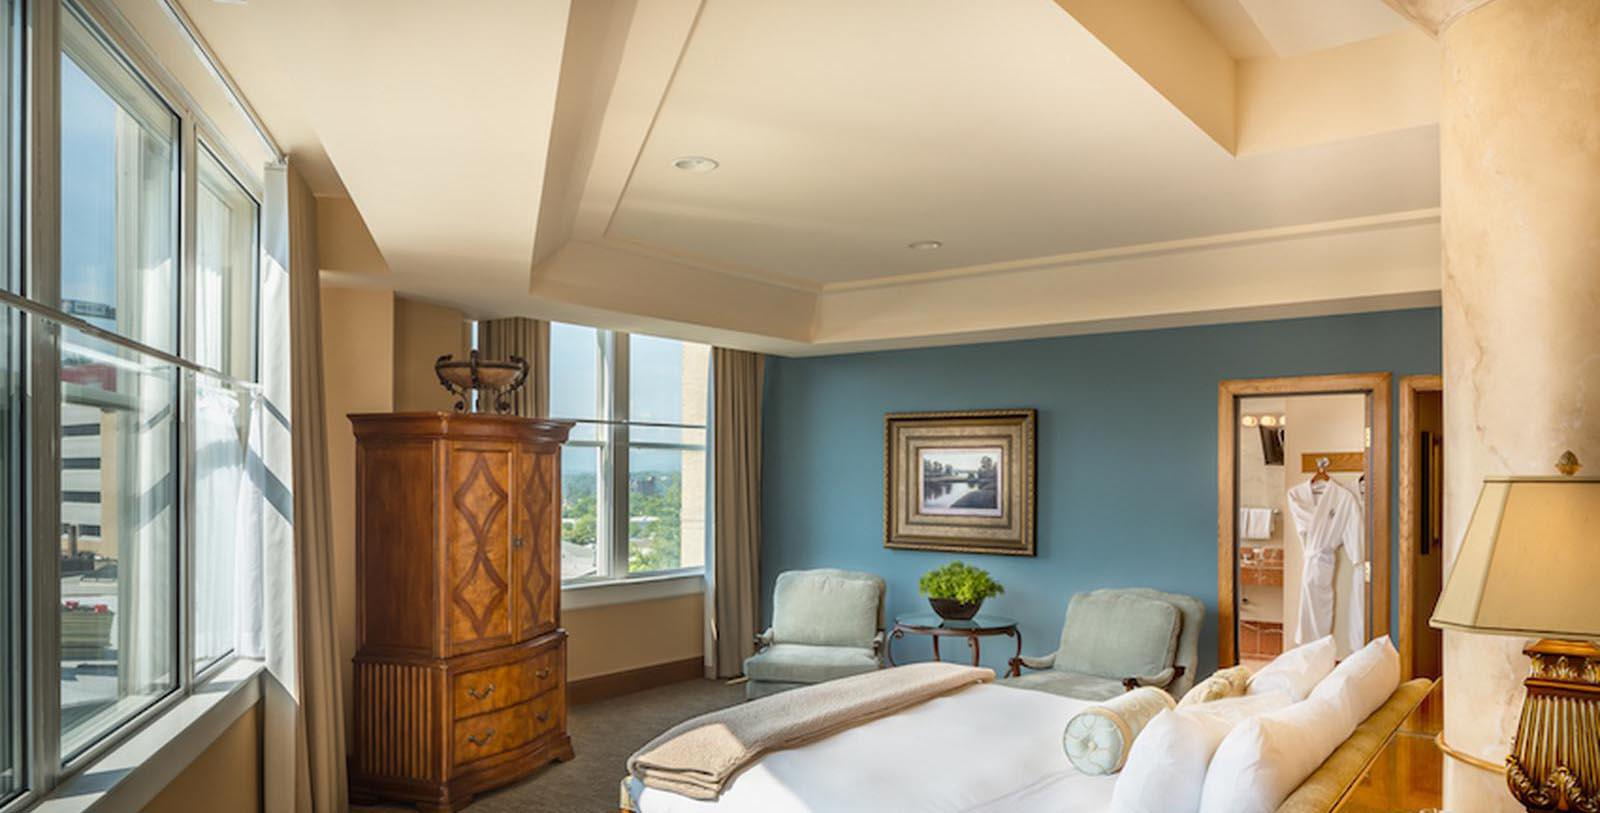 Image of guestroom suite Haywood Park, 1923, Member of Historic Hotels of America, in Asheville, North Carolina, Explore